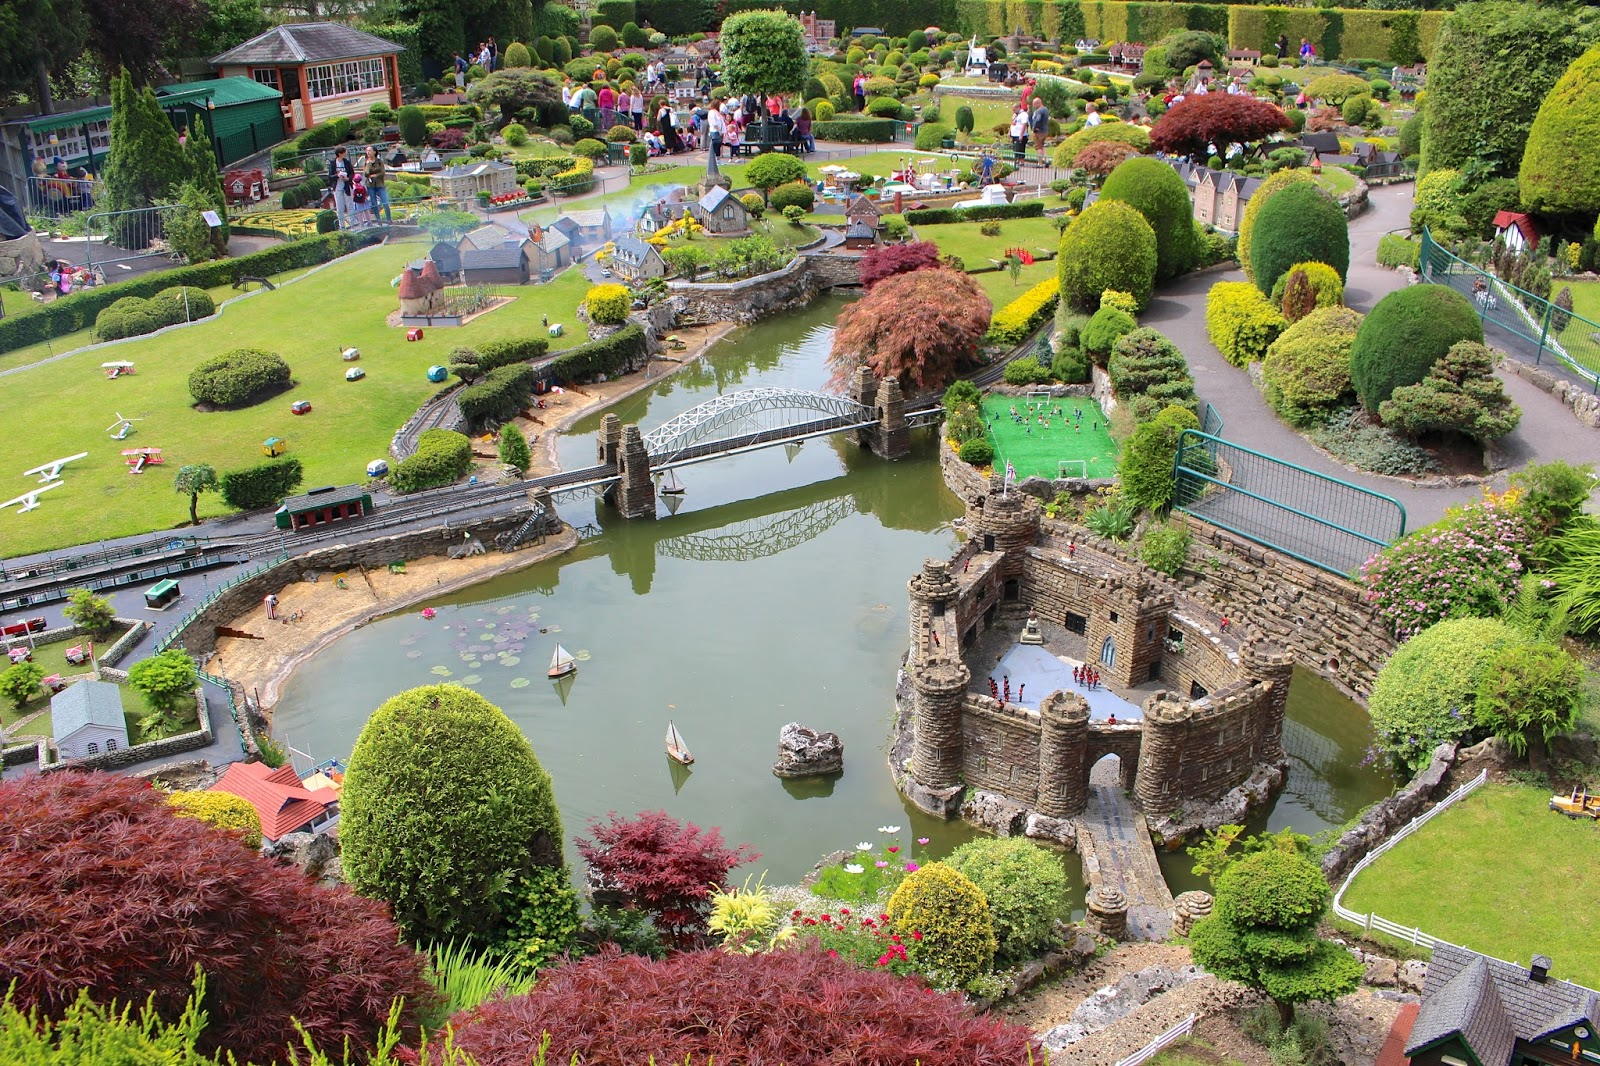 Full view of Bekonscot model village